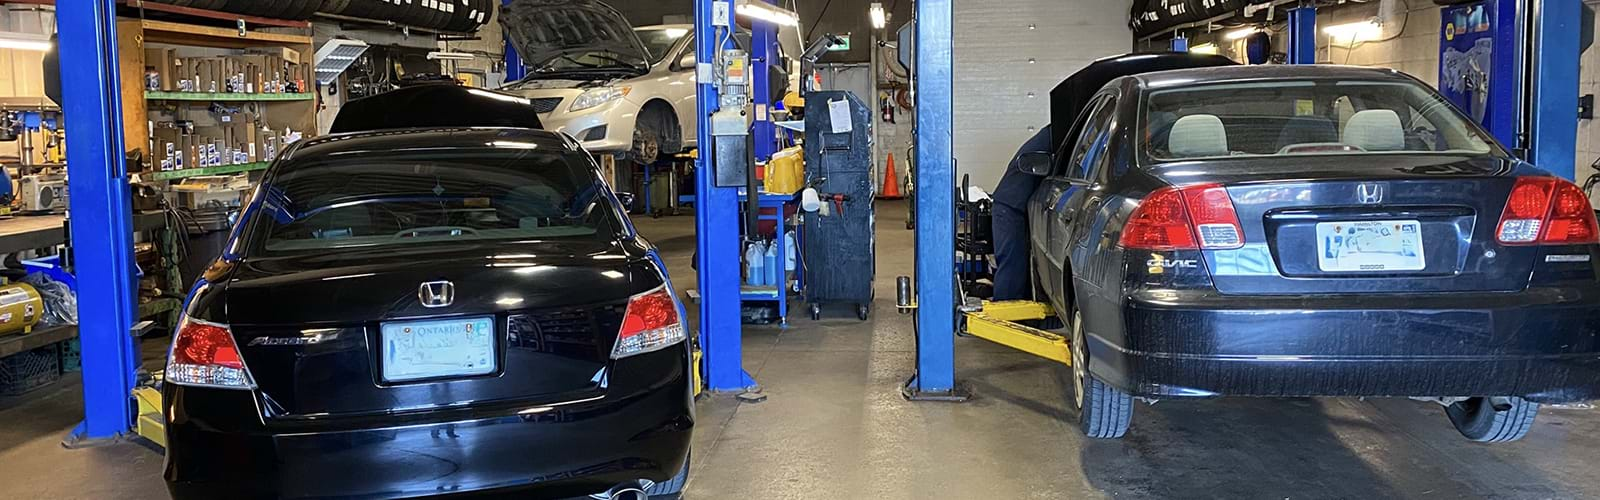 Services at Right Way Auto Repair, auto repair shop in Hamilton, ON